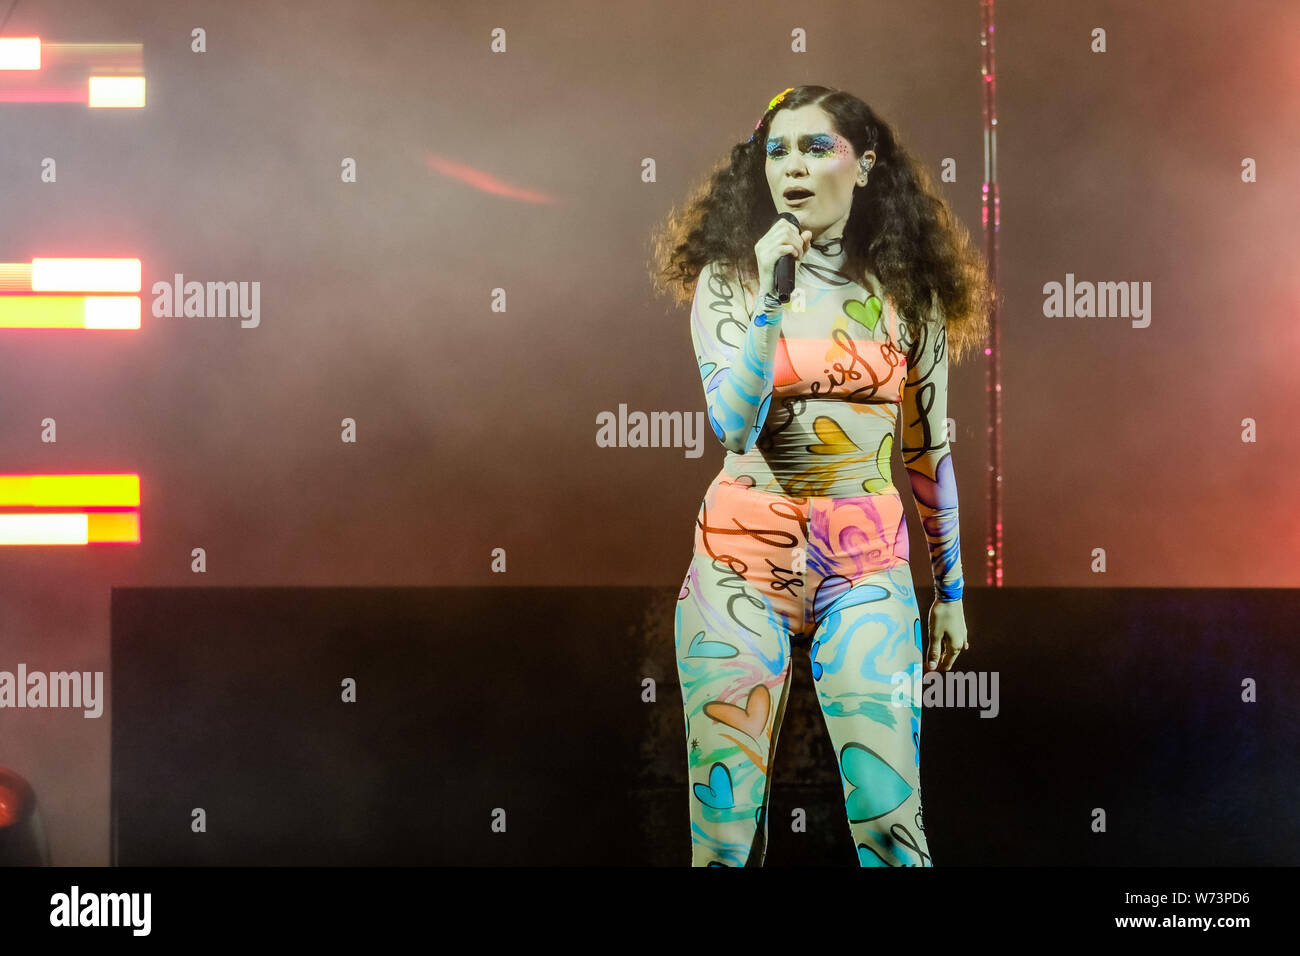 Preston Park, Brighton, Royaume-Uni. 4 août 2019. Jessie J effectue à BN1 Lovefest , partie de la fierté de Brighton. Jessica Ellen Cornish, connu comme Jessie J, est un chanteur et auteur-compositeur.. Photo par Julie Edwards./Alamy Live News Banque D'Images